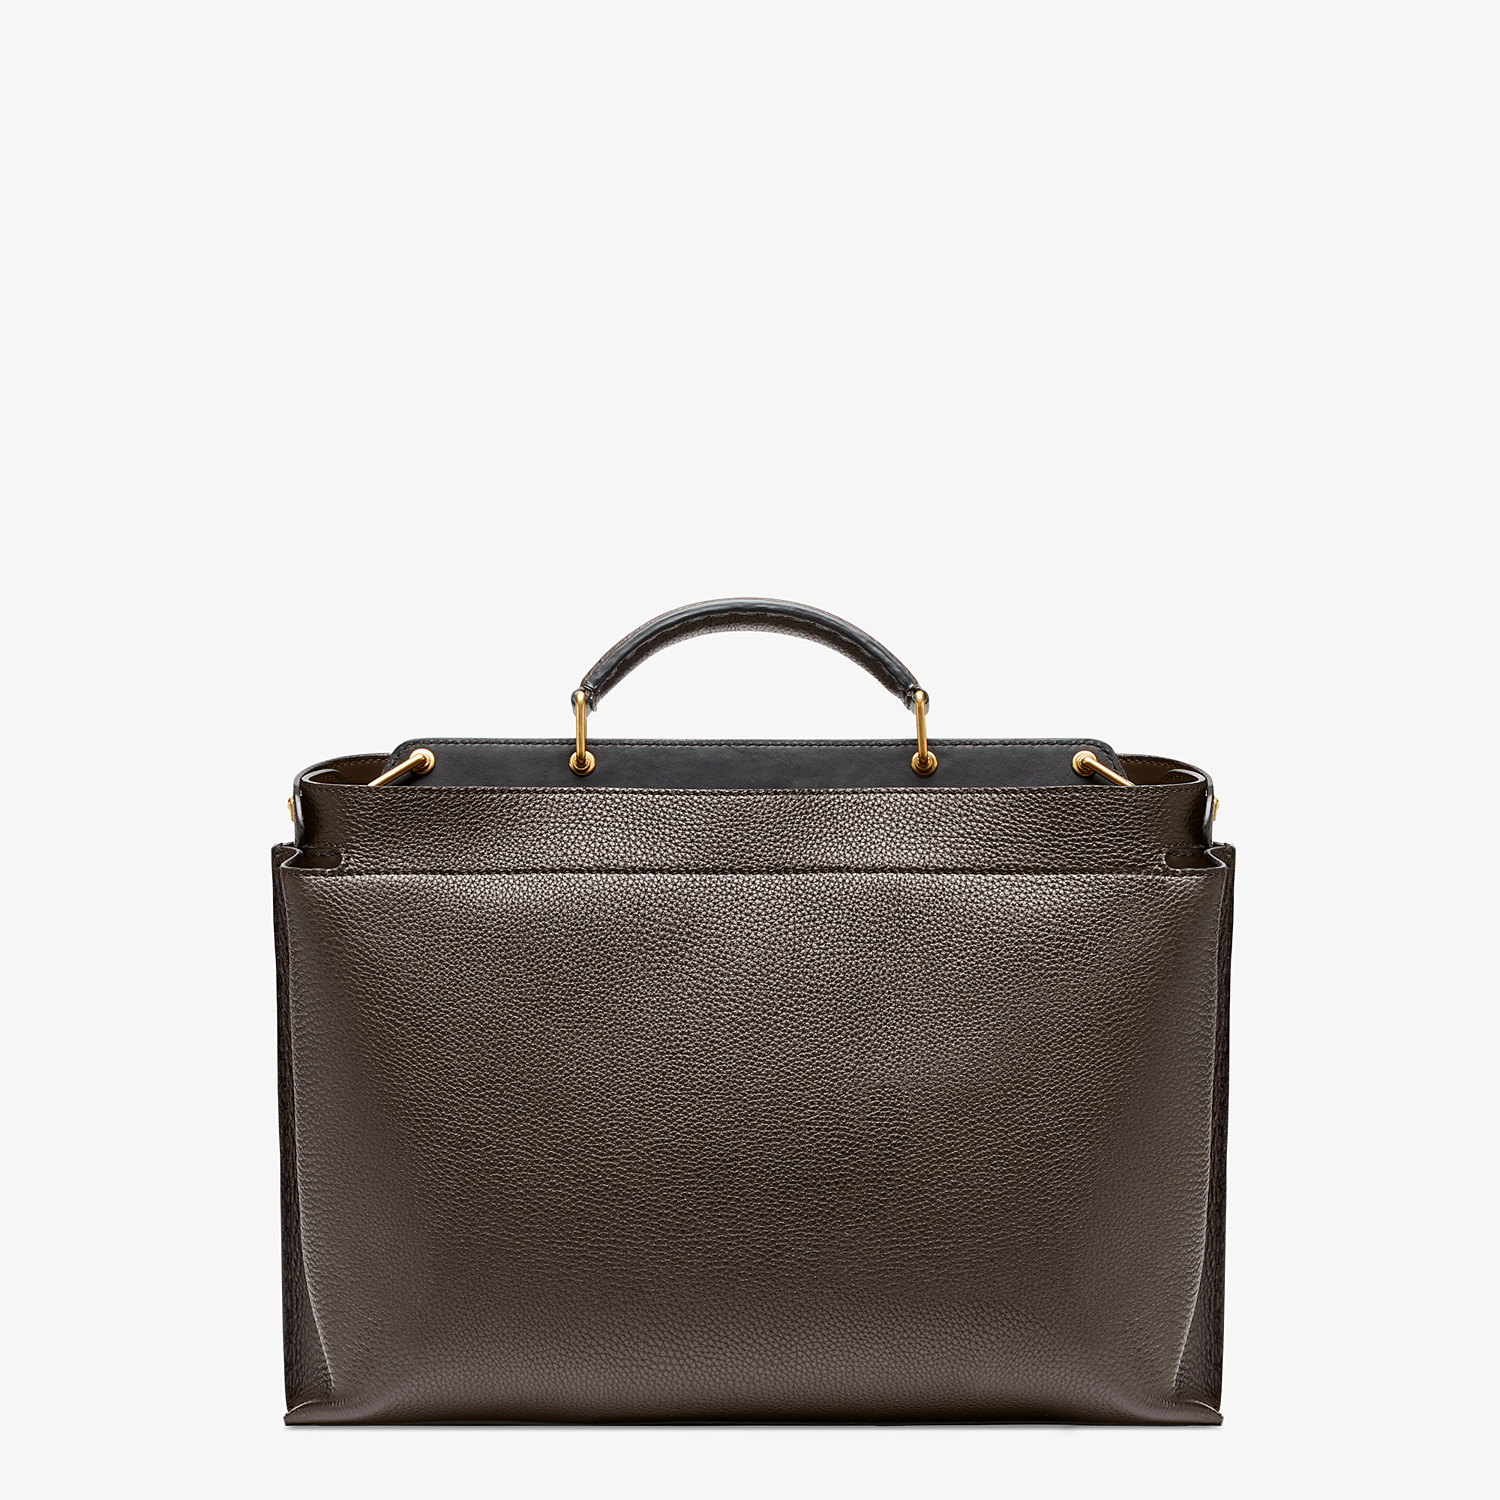 FENDI PEEKABOO ICONIC ESSENTIAL - Brown leather bag - view 3 detail